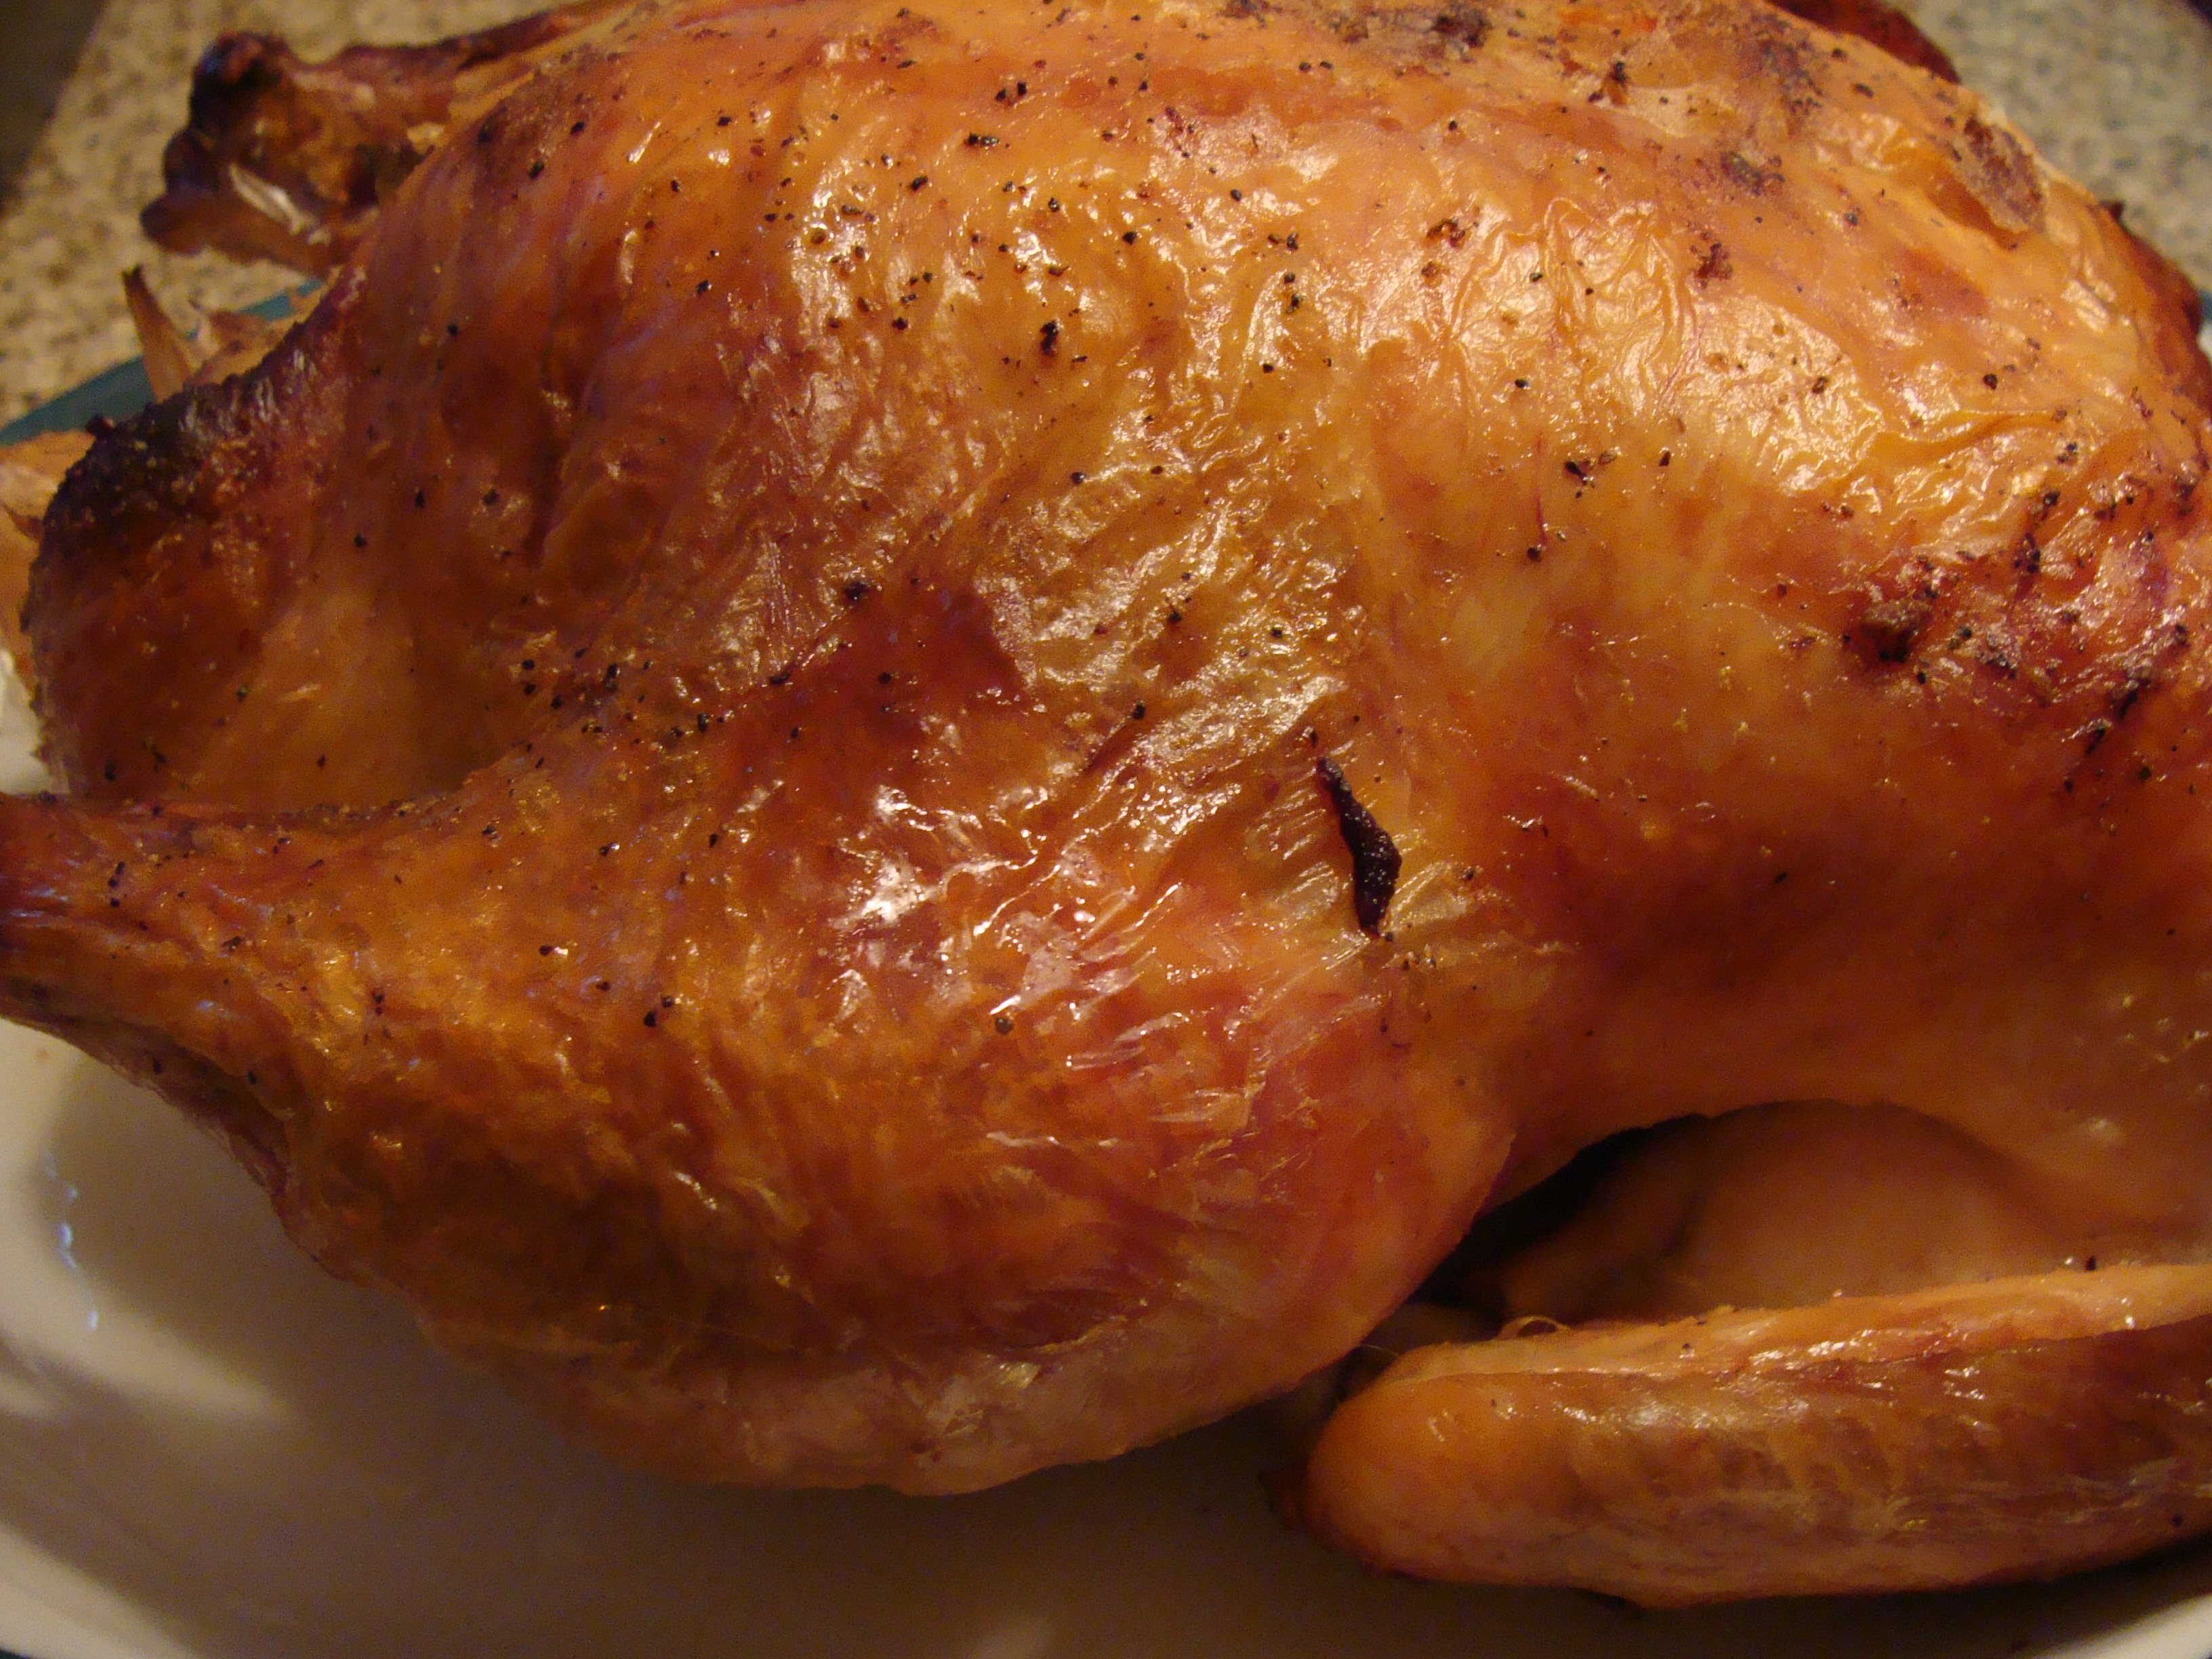 Chicken in a roaster recipe